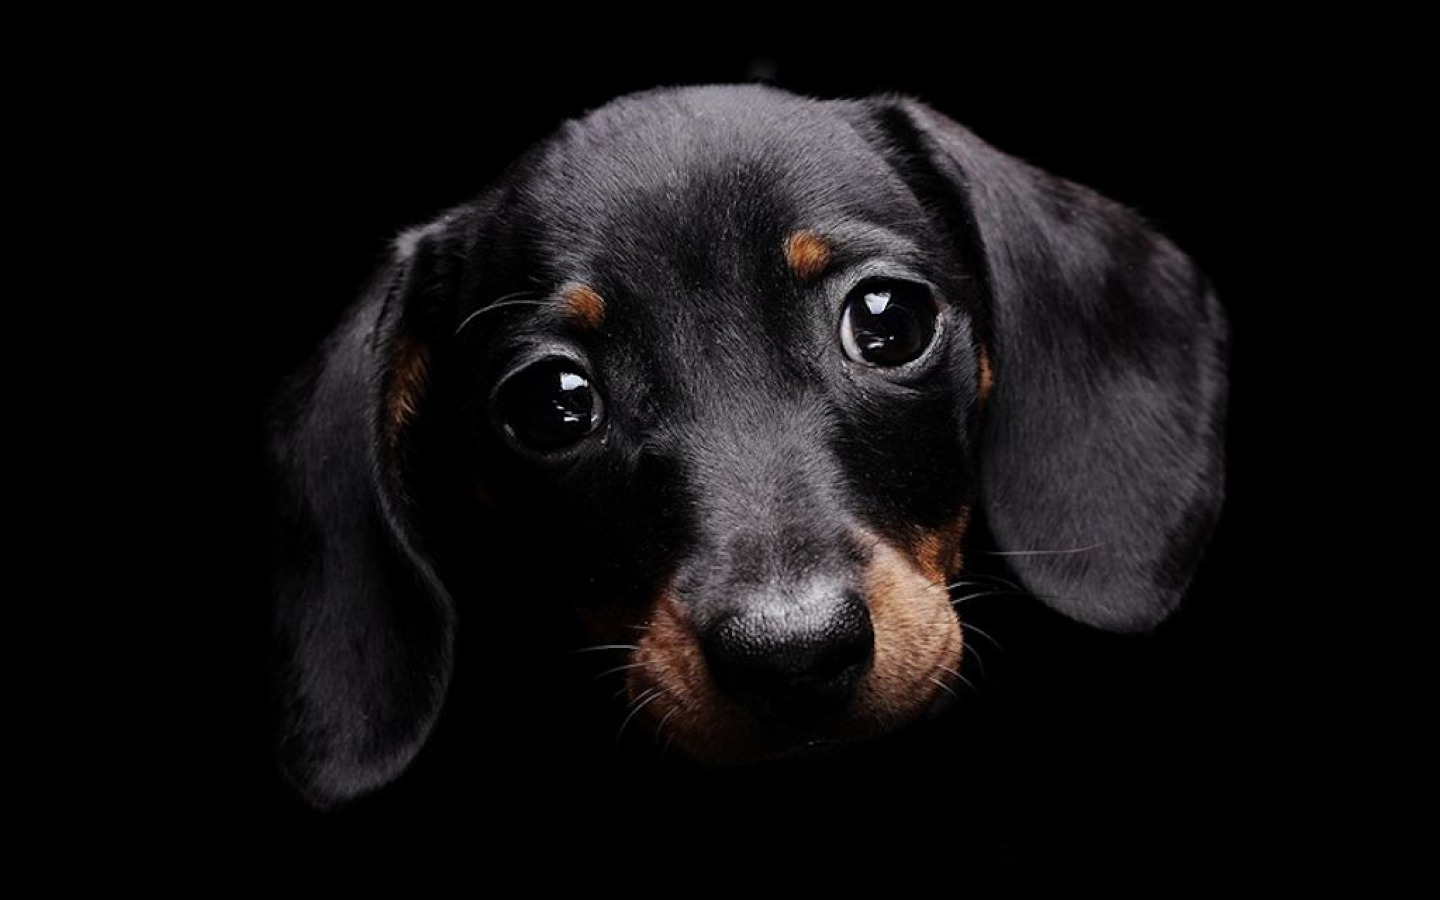 puppy dog wallpaper - photo #38